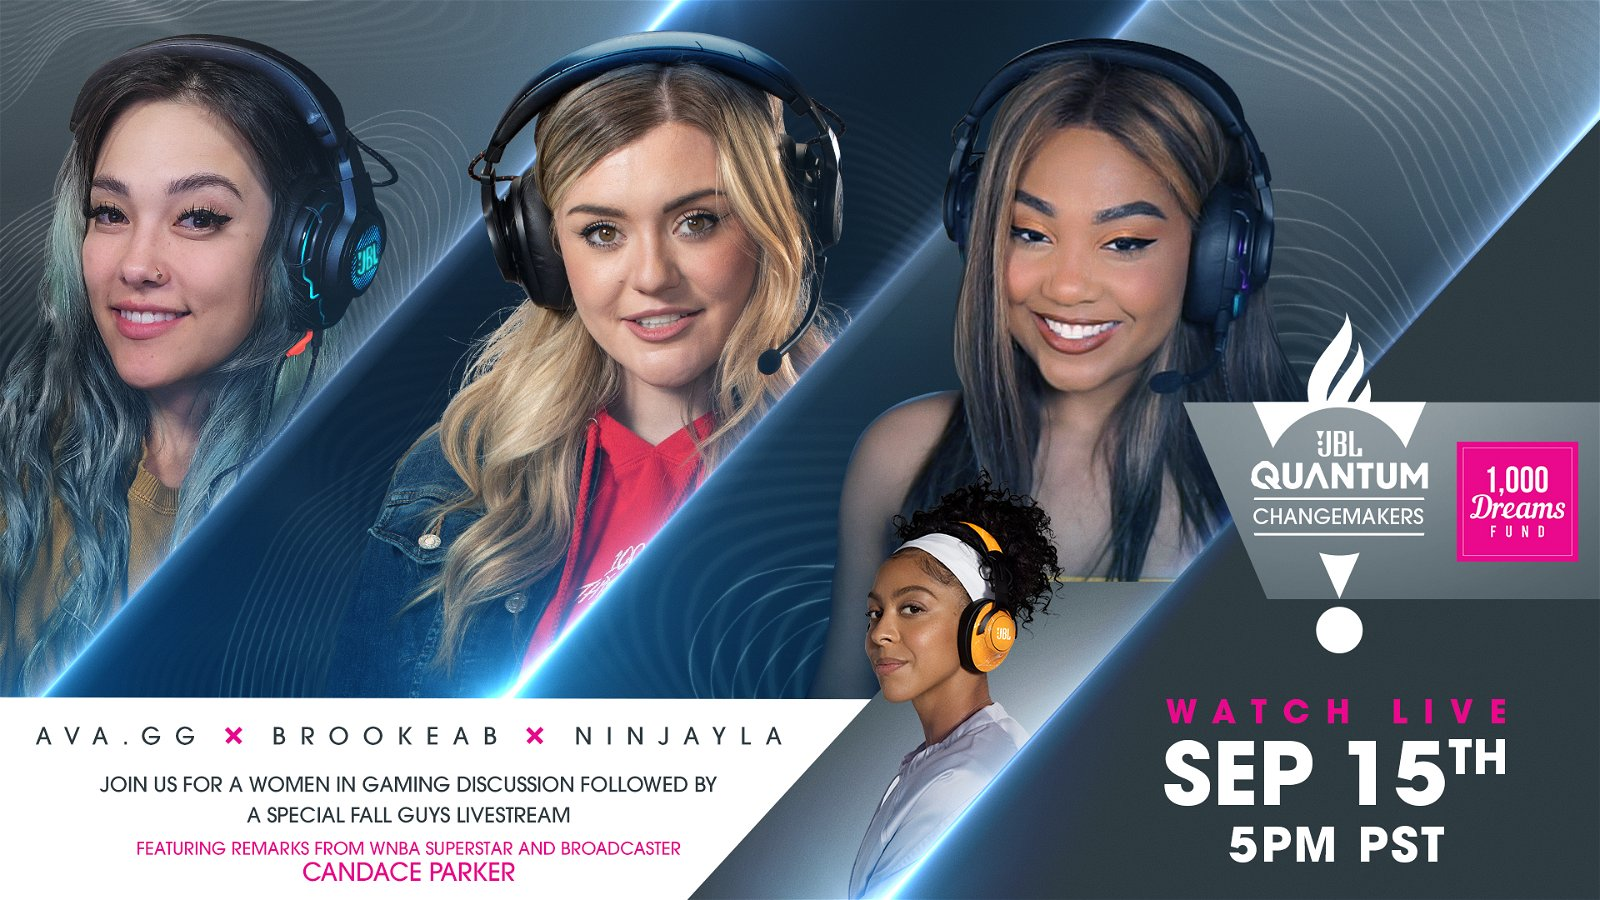 JBL Announces Changemakers Event, A Conversation With Women in Gaming 2